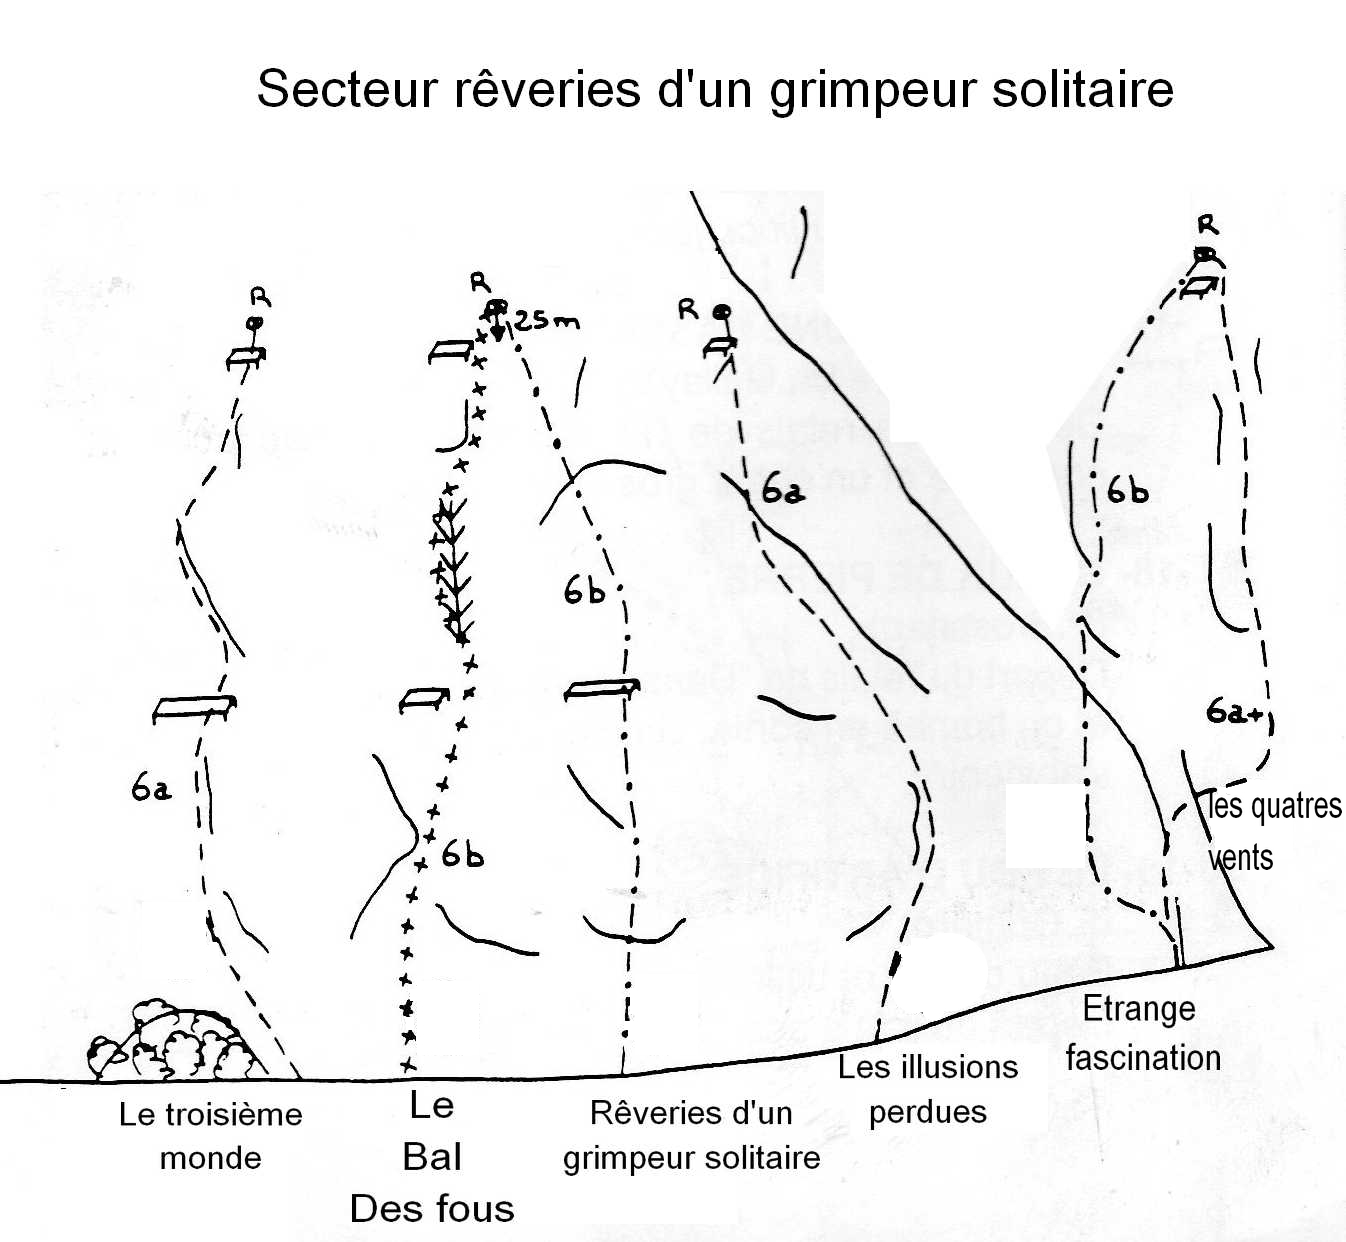 reveries_d'un_grimpeur_solitaire